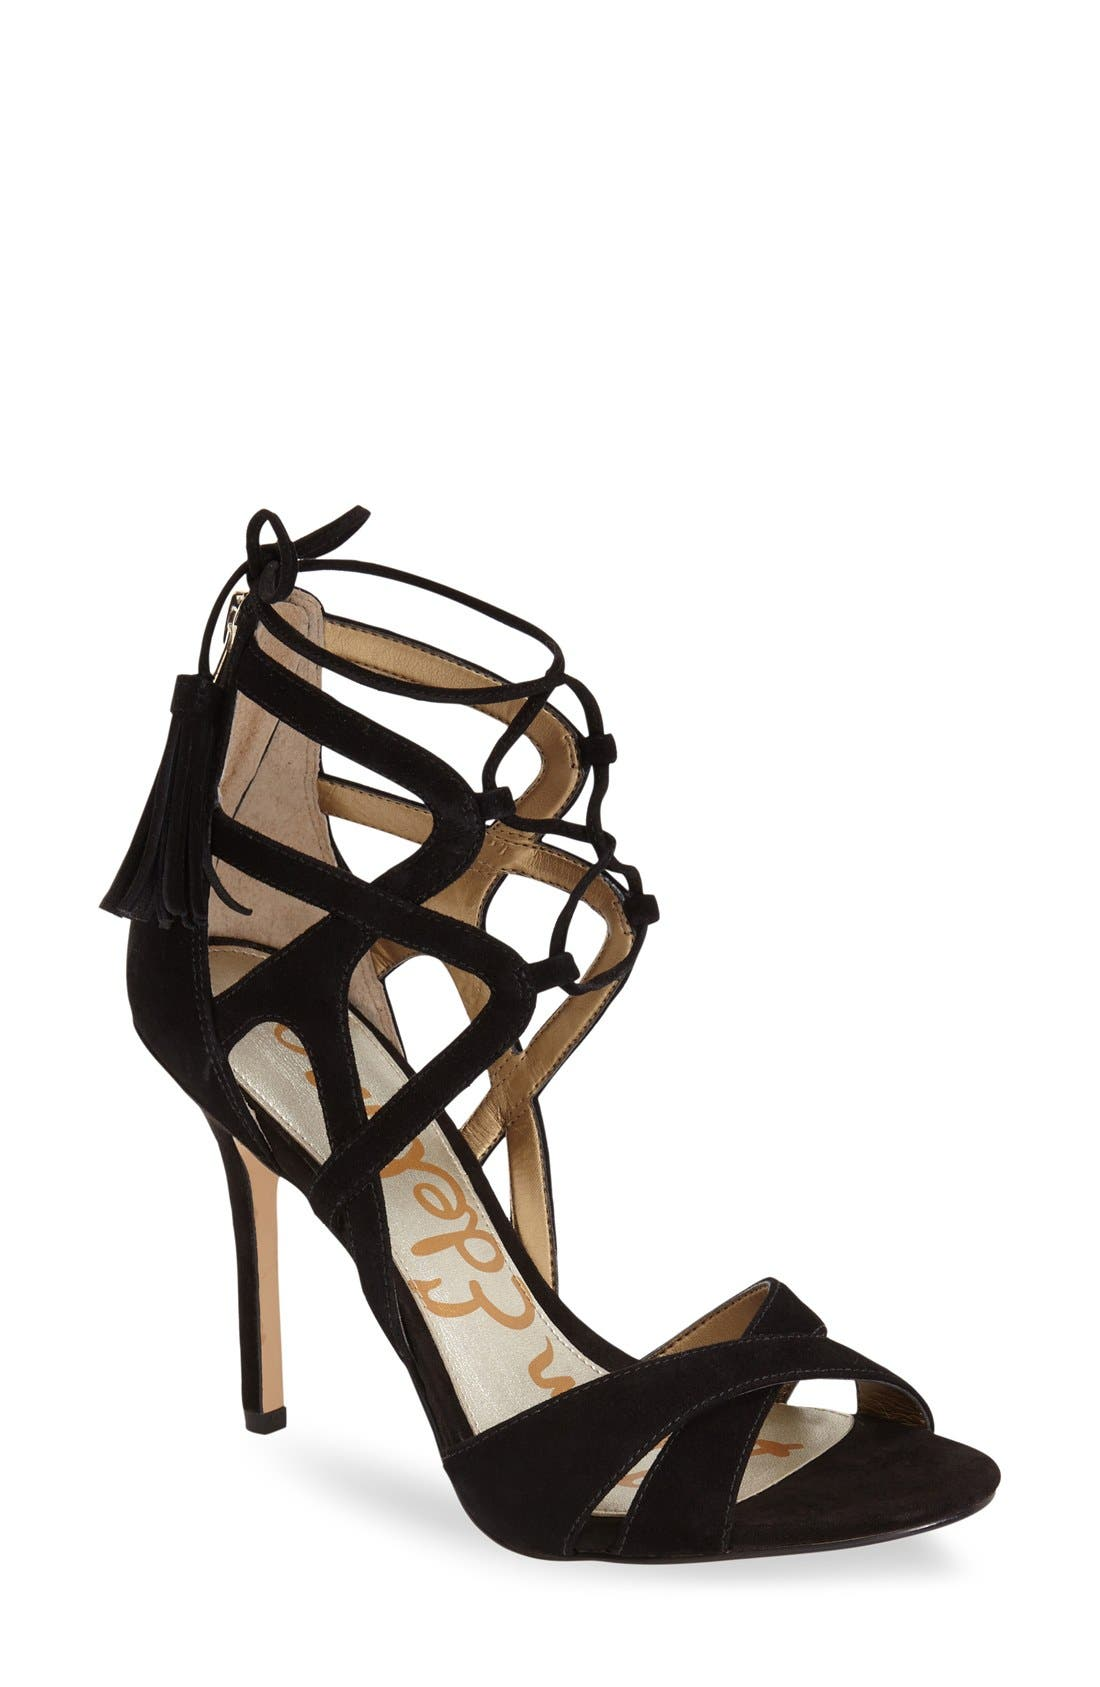 Main Image - Sam Edelman 'Azela' Tasseled Lace-Up Sandal (Women)